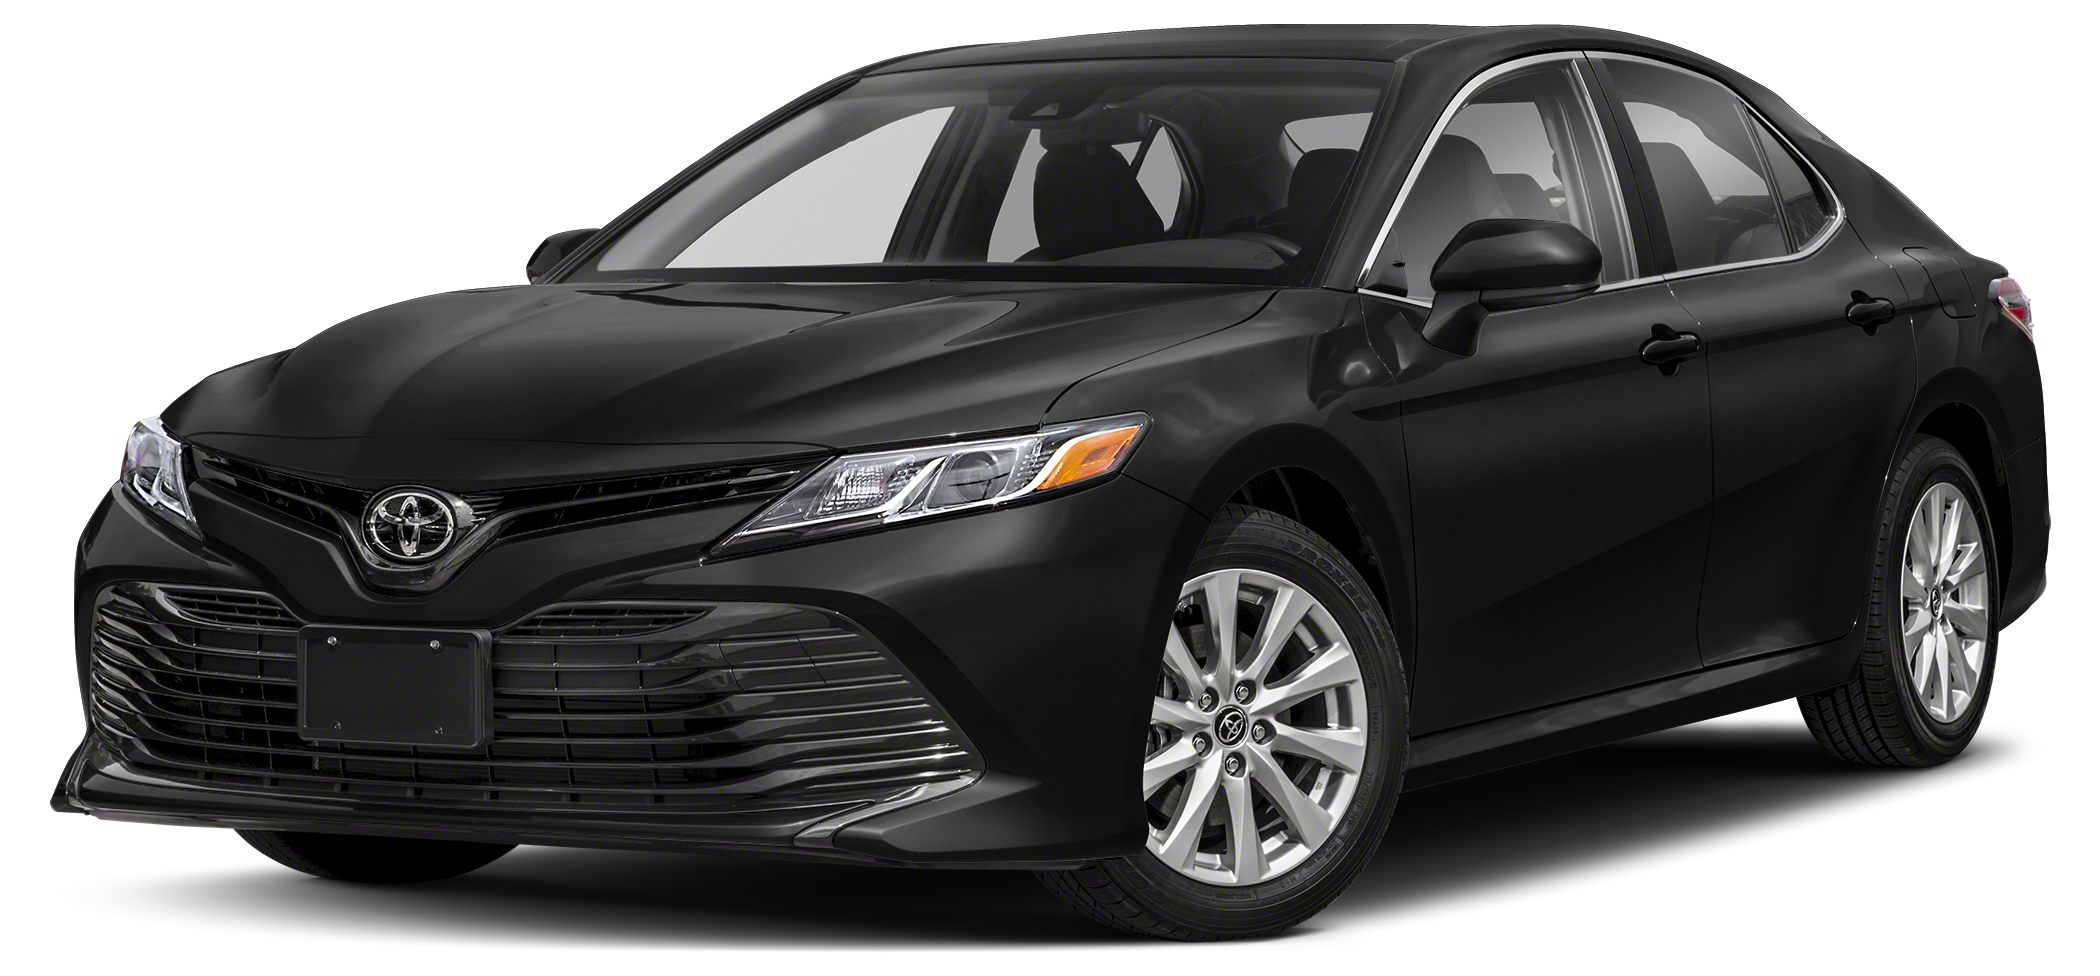 2018 Toyota Camry LE FUEL EFFICIENT 39 MPG Hwy28 MPG City LE trim PREDAWN GRAY MICA exterior an